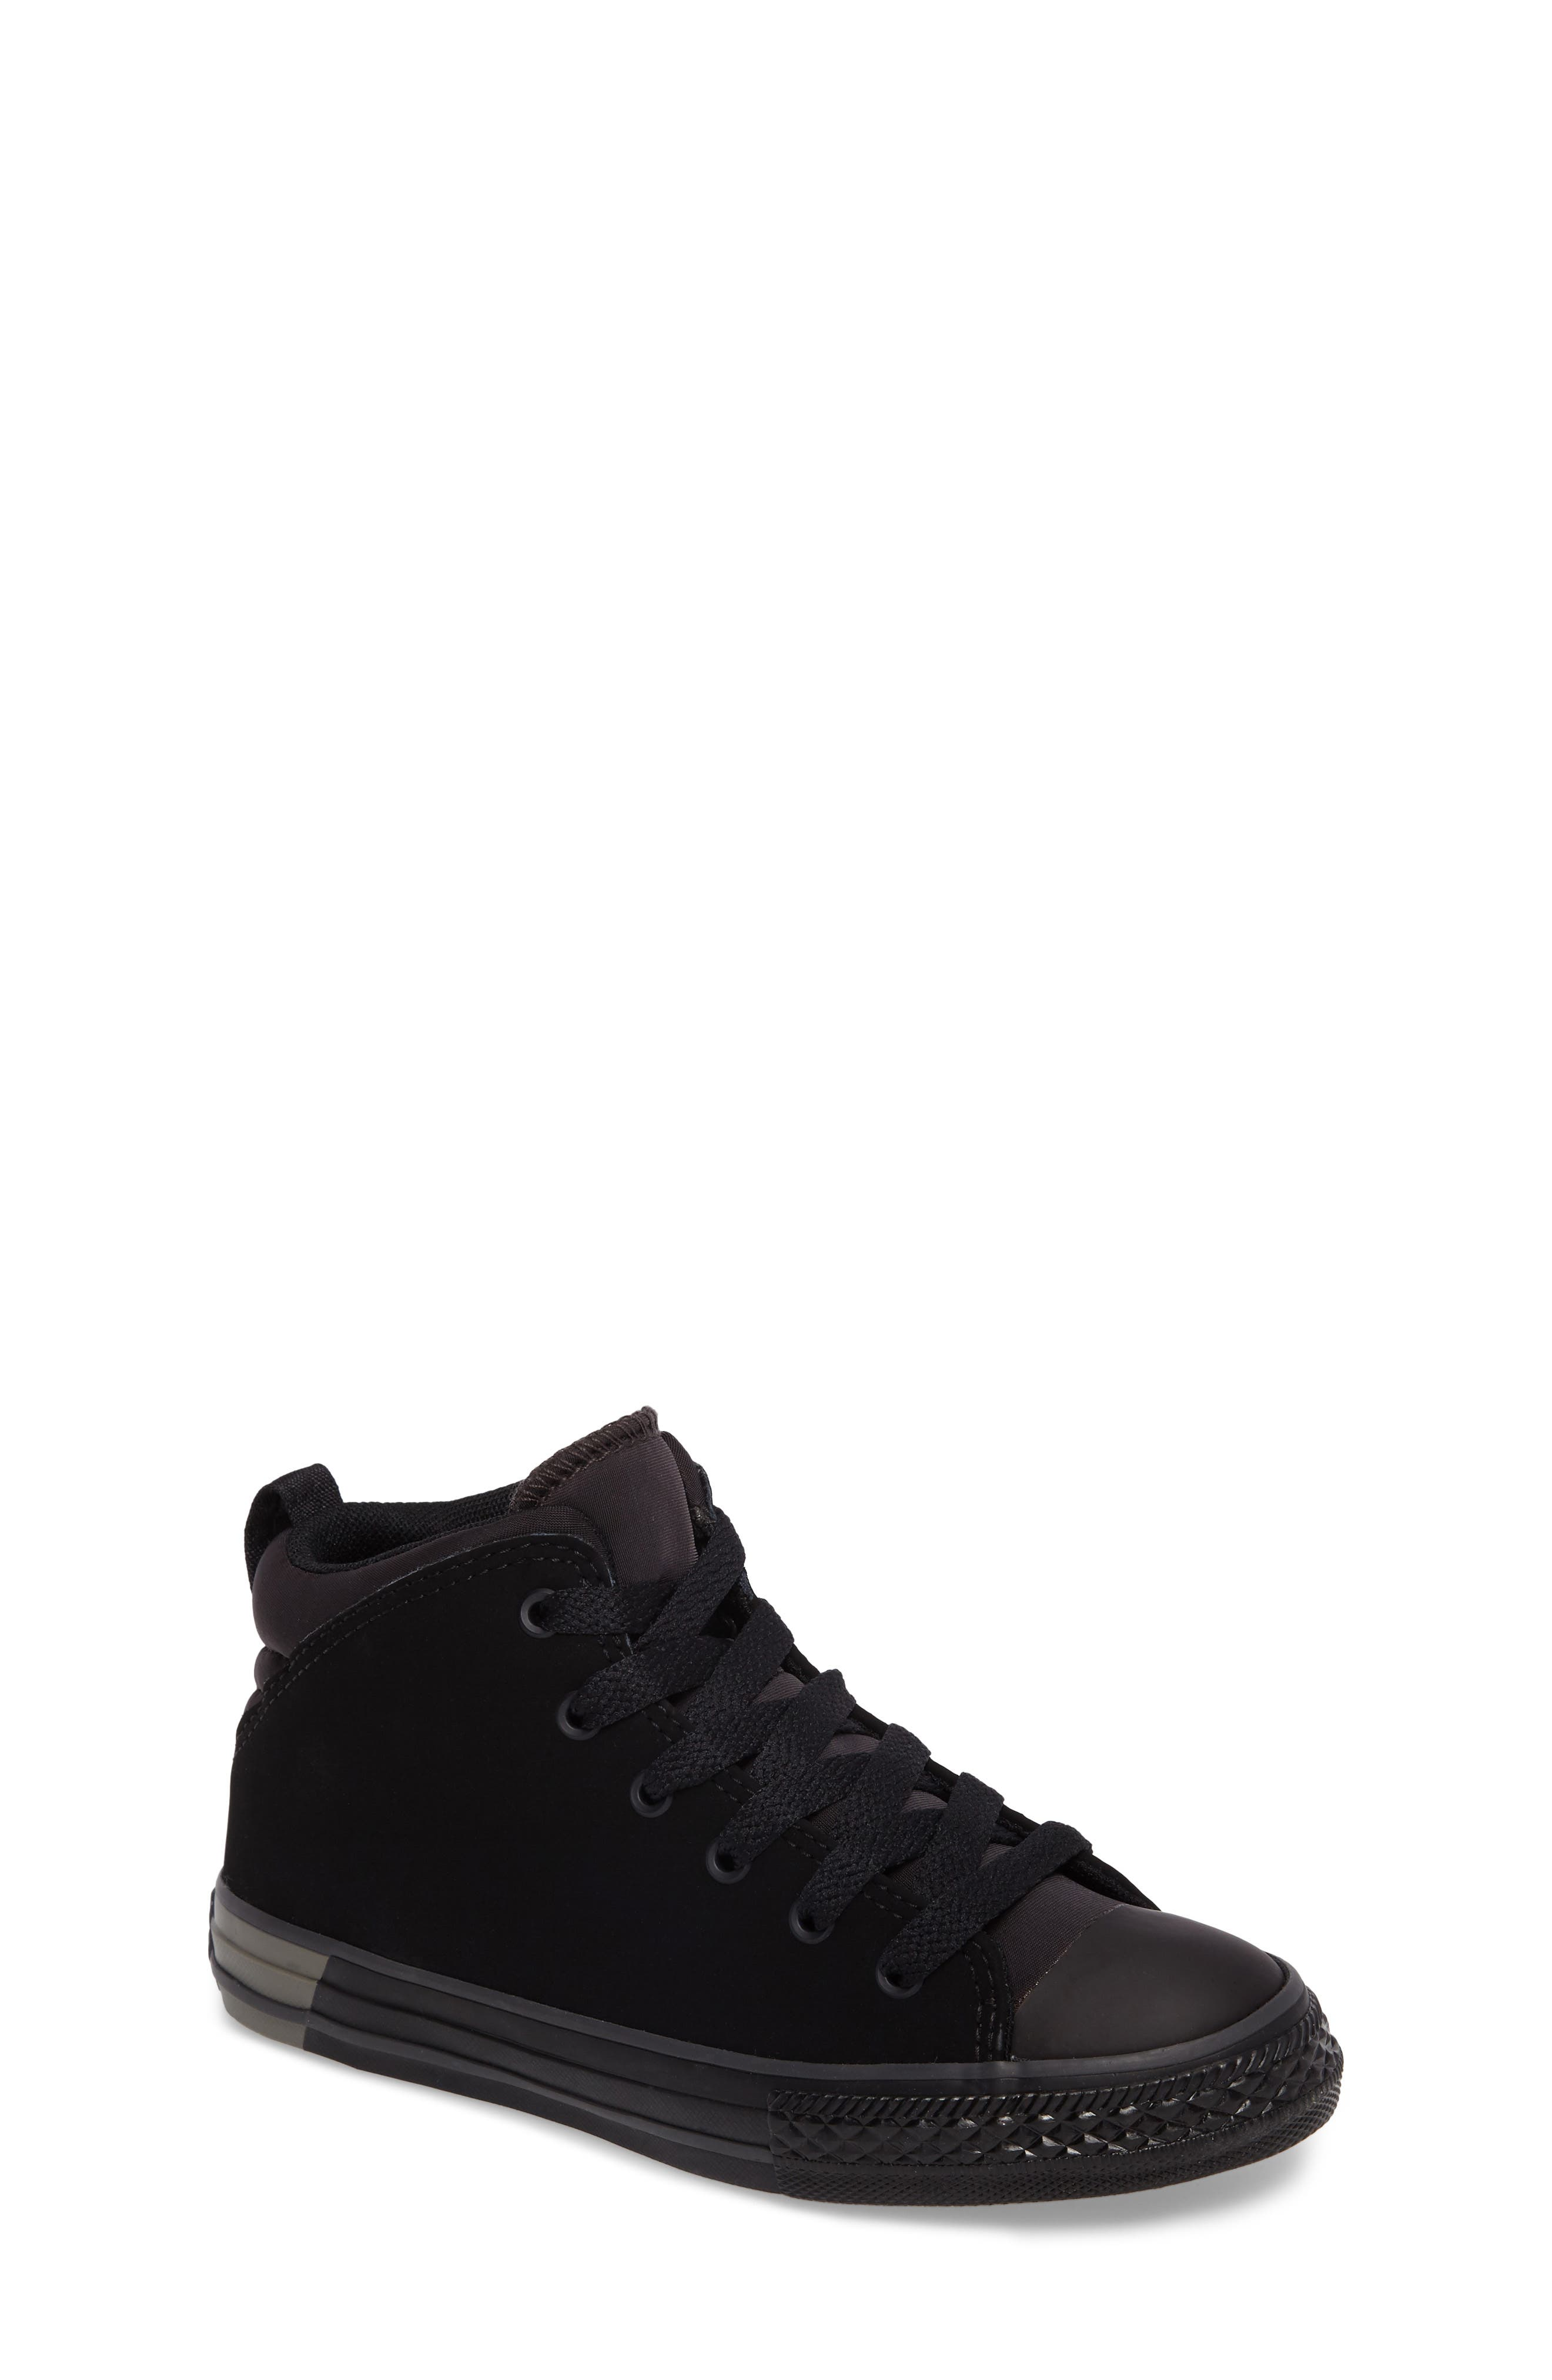 CONVERSE Chuck Taylor<sup>®</sup> All Star<sup>®</sup> Official High Top Sneaker